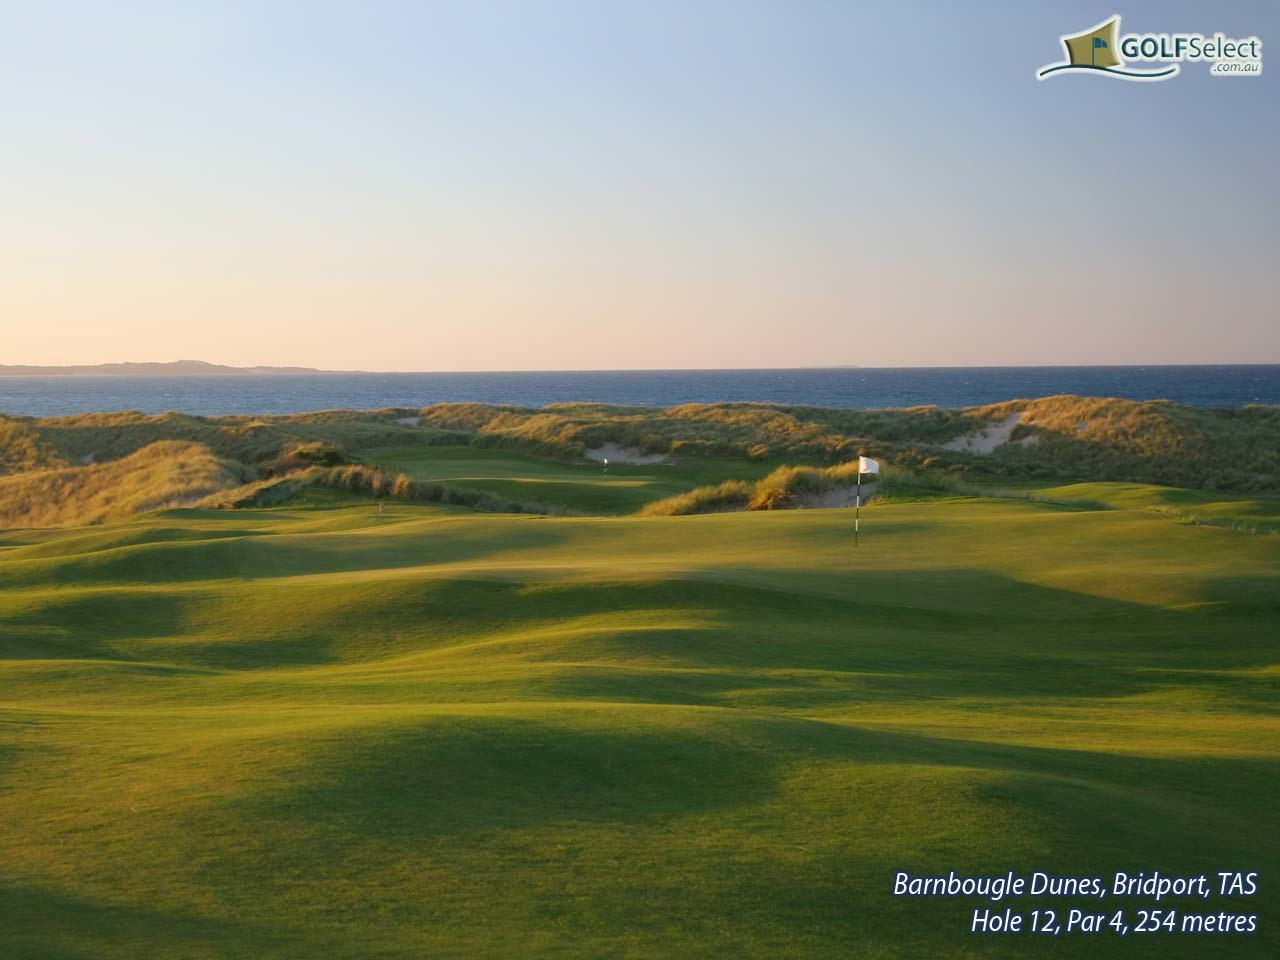 Barnbougle Dunes Golf Links Hole 12, Par 4, 254 metres